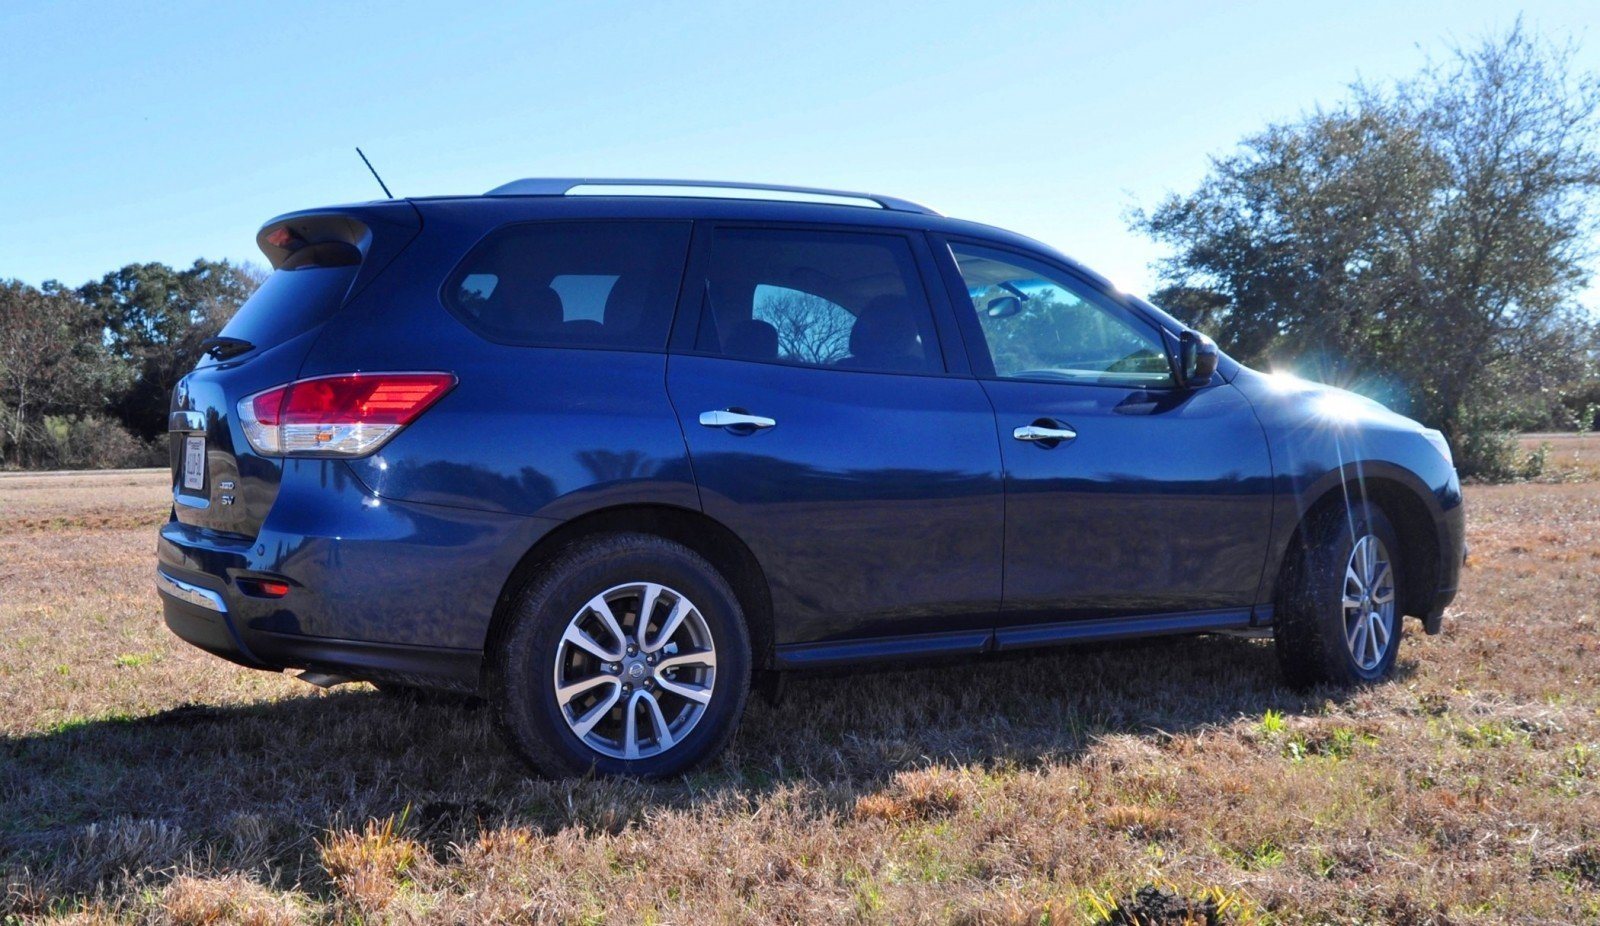 Road Test Review - 2015 Nissan Pathfinder SV 4WD 107